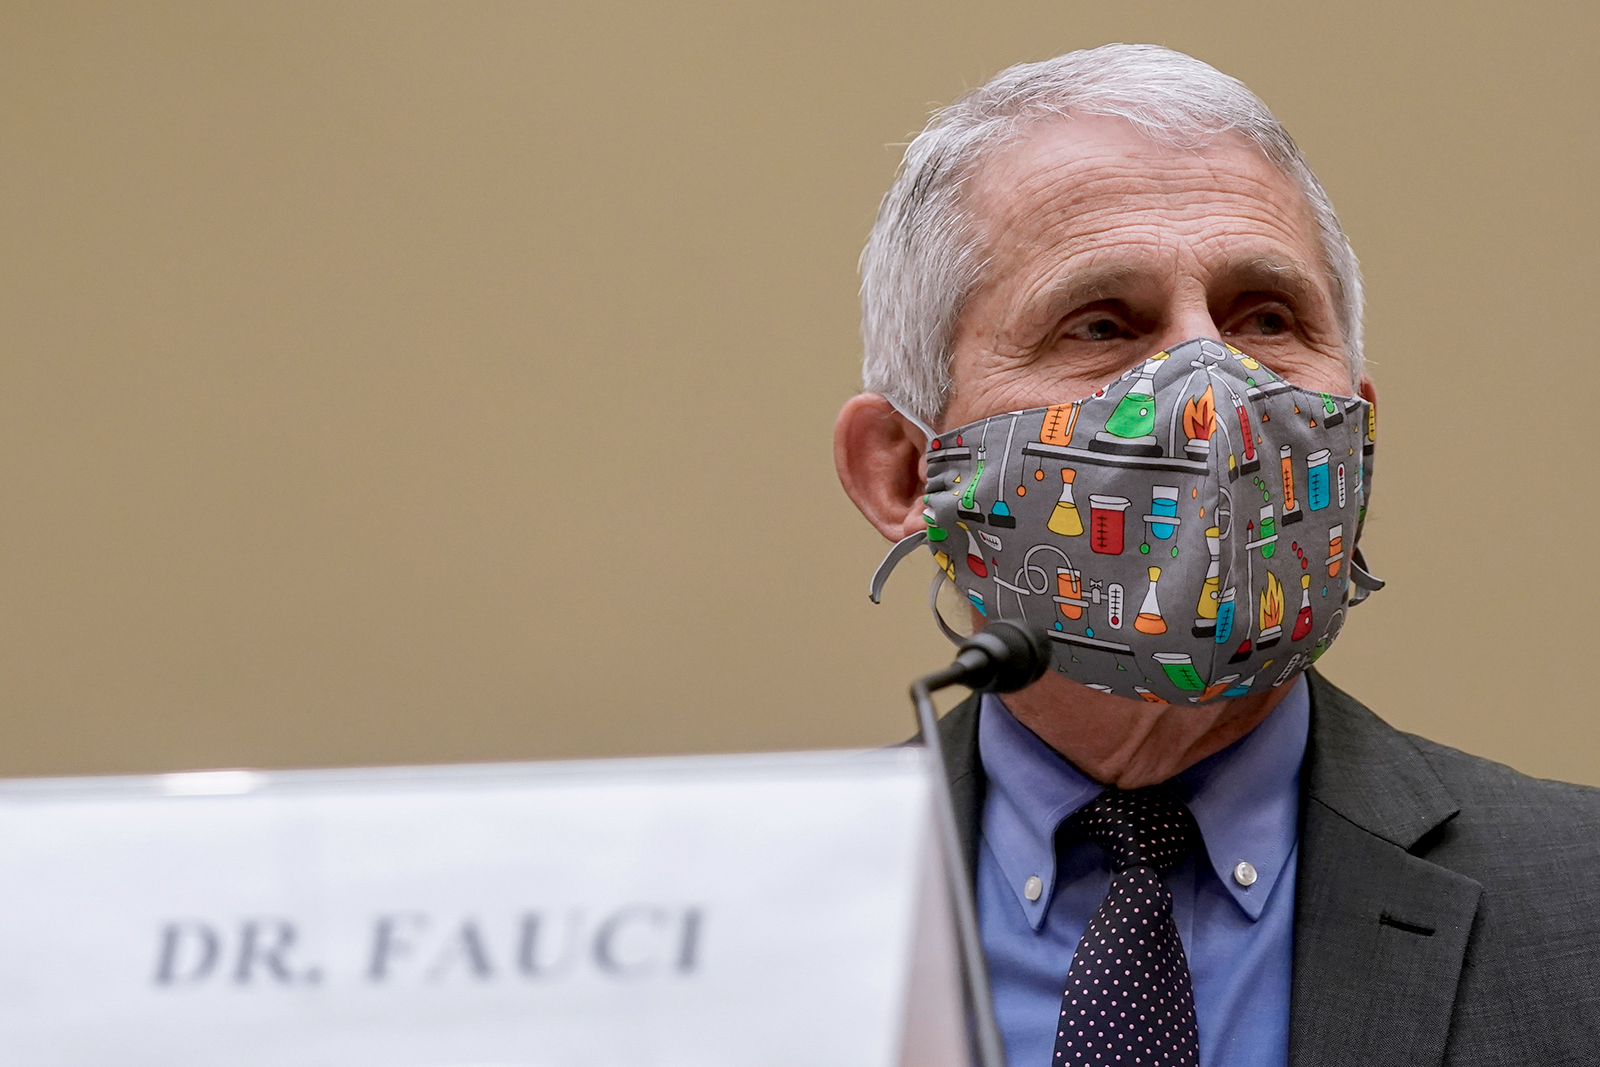 Fauci expects almost all children to be eligible for Covid vaccines by first quarter 2022 at the latest